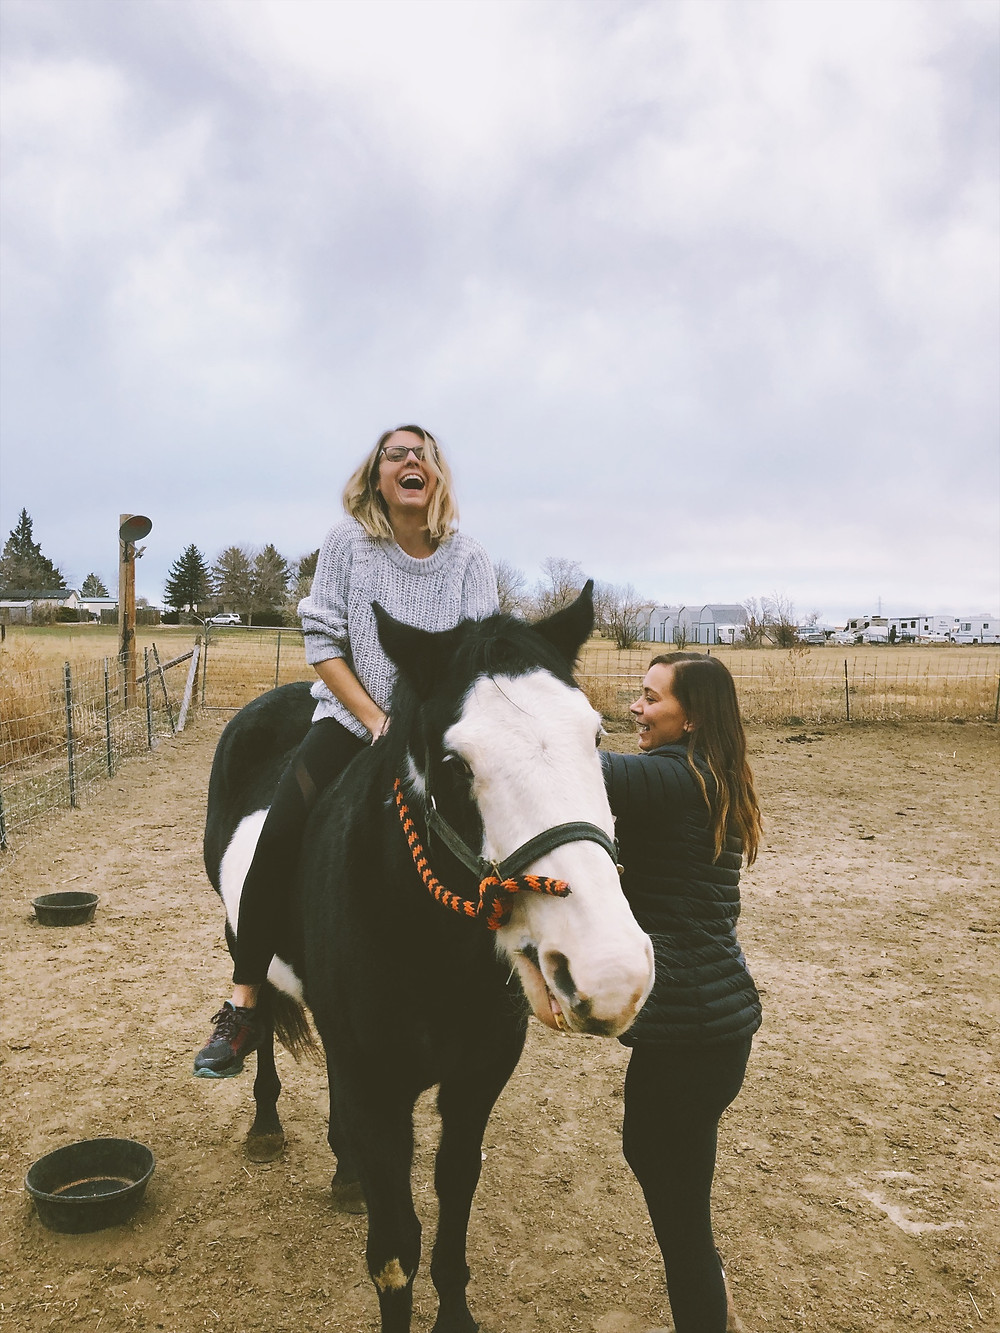 Got on a horse again, first time since I sold my Sadie a year ago.